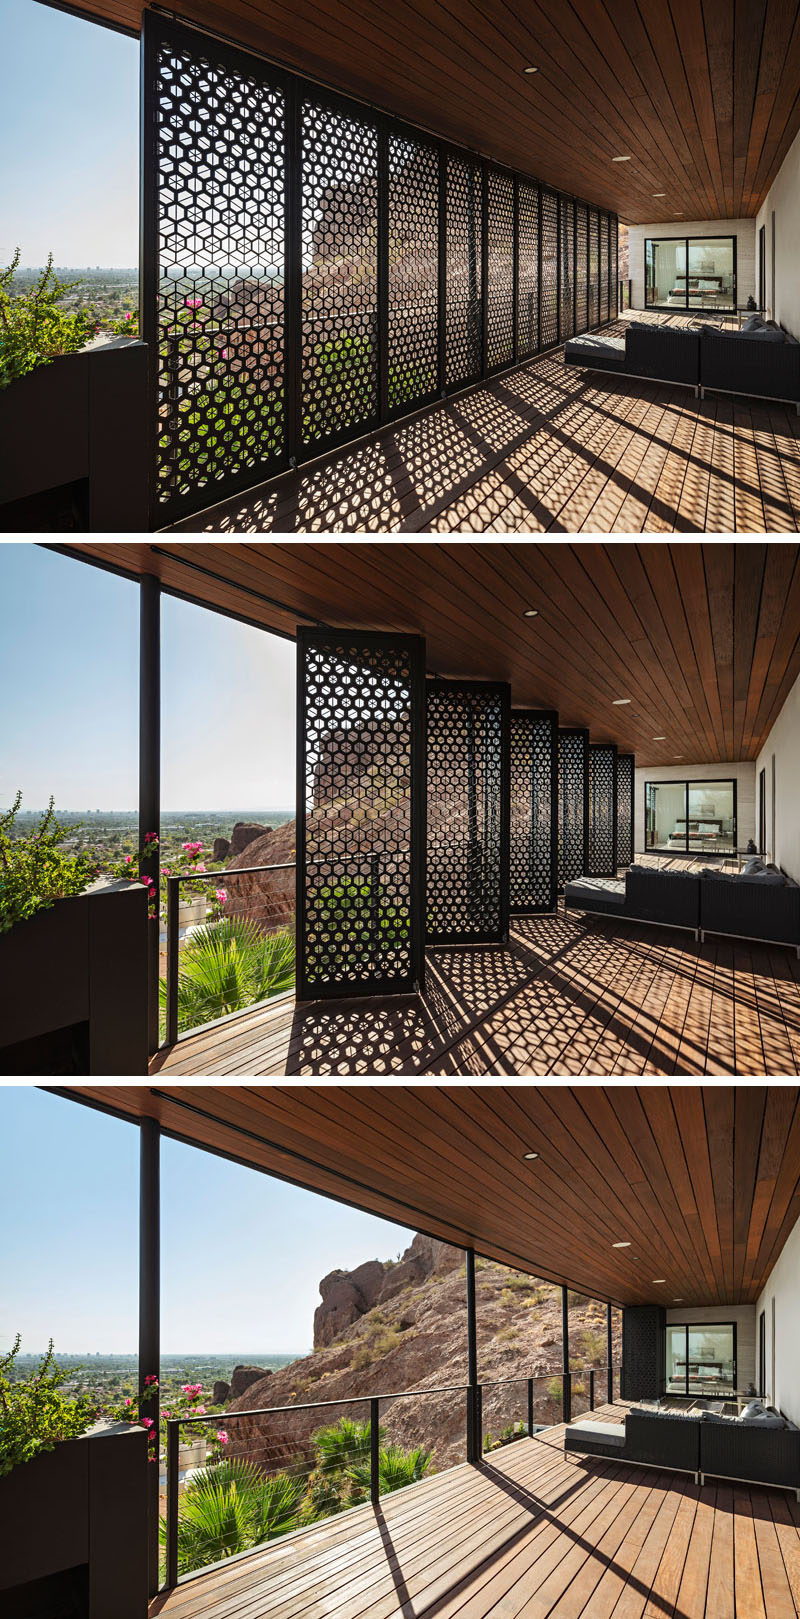 This modern patio, which has an Ipe ceiling and floor, features bi-folding custom steel screens. #Patio #Deck #Screens #Architecture #ModernHouse